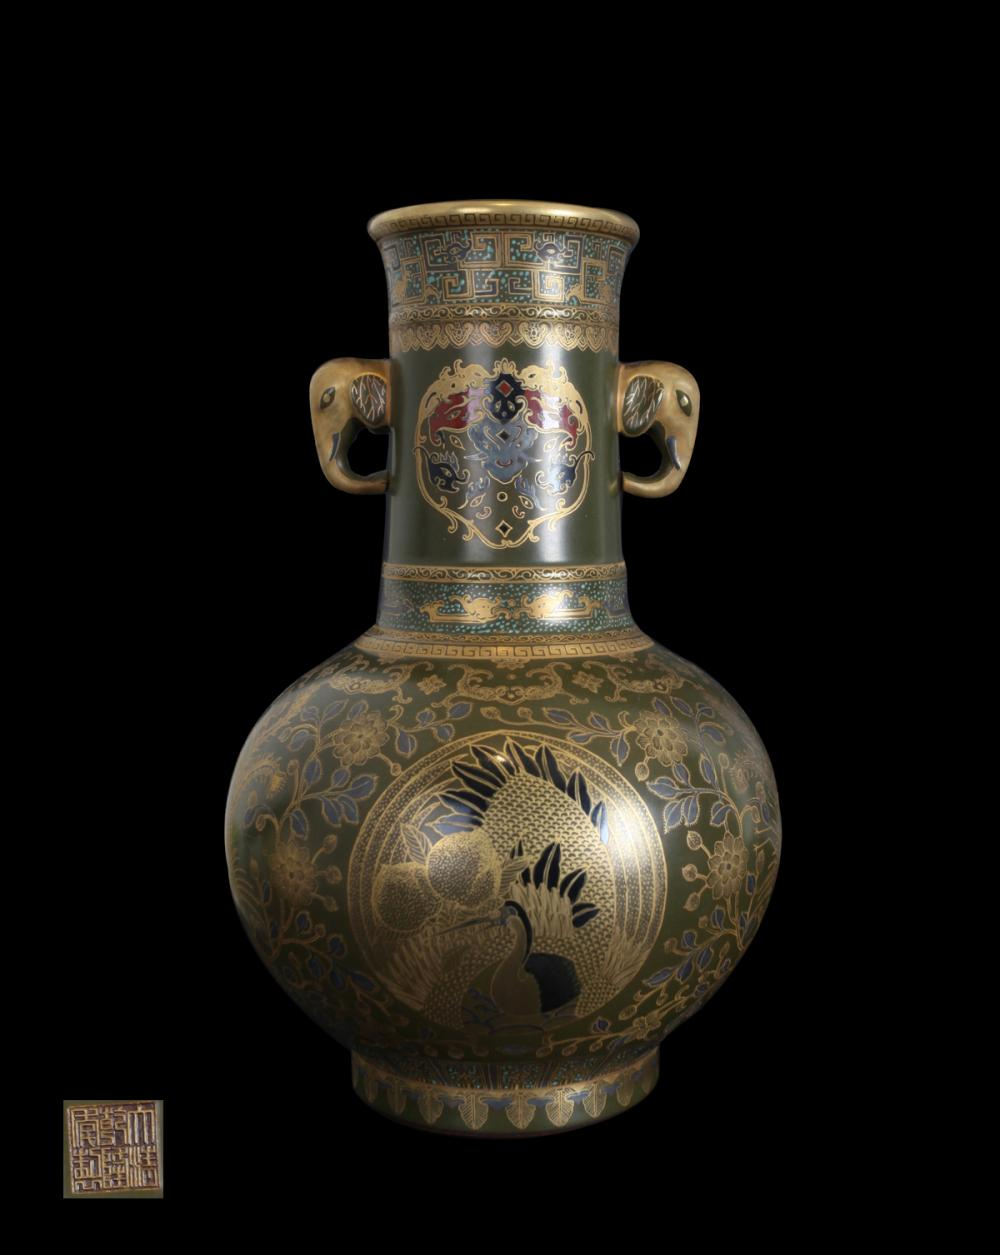 A LACQUER VASE WITH GOLD-PAINTED DESIGN